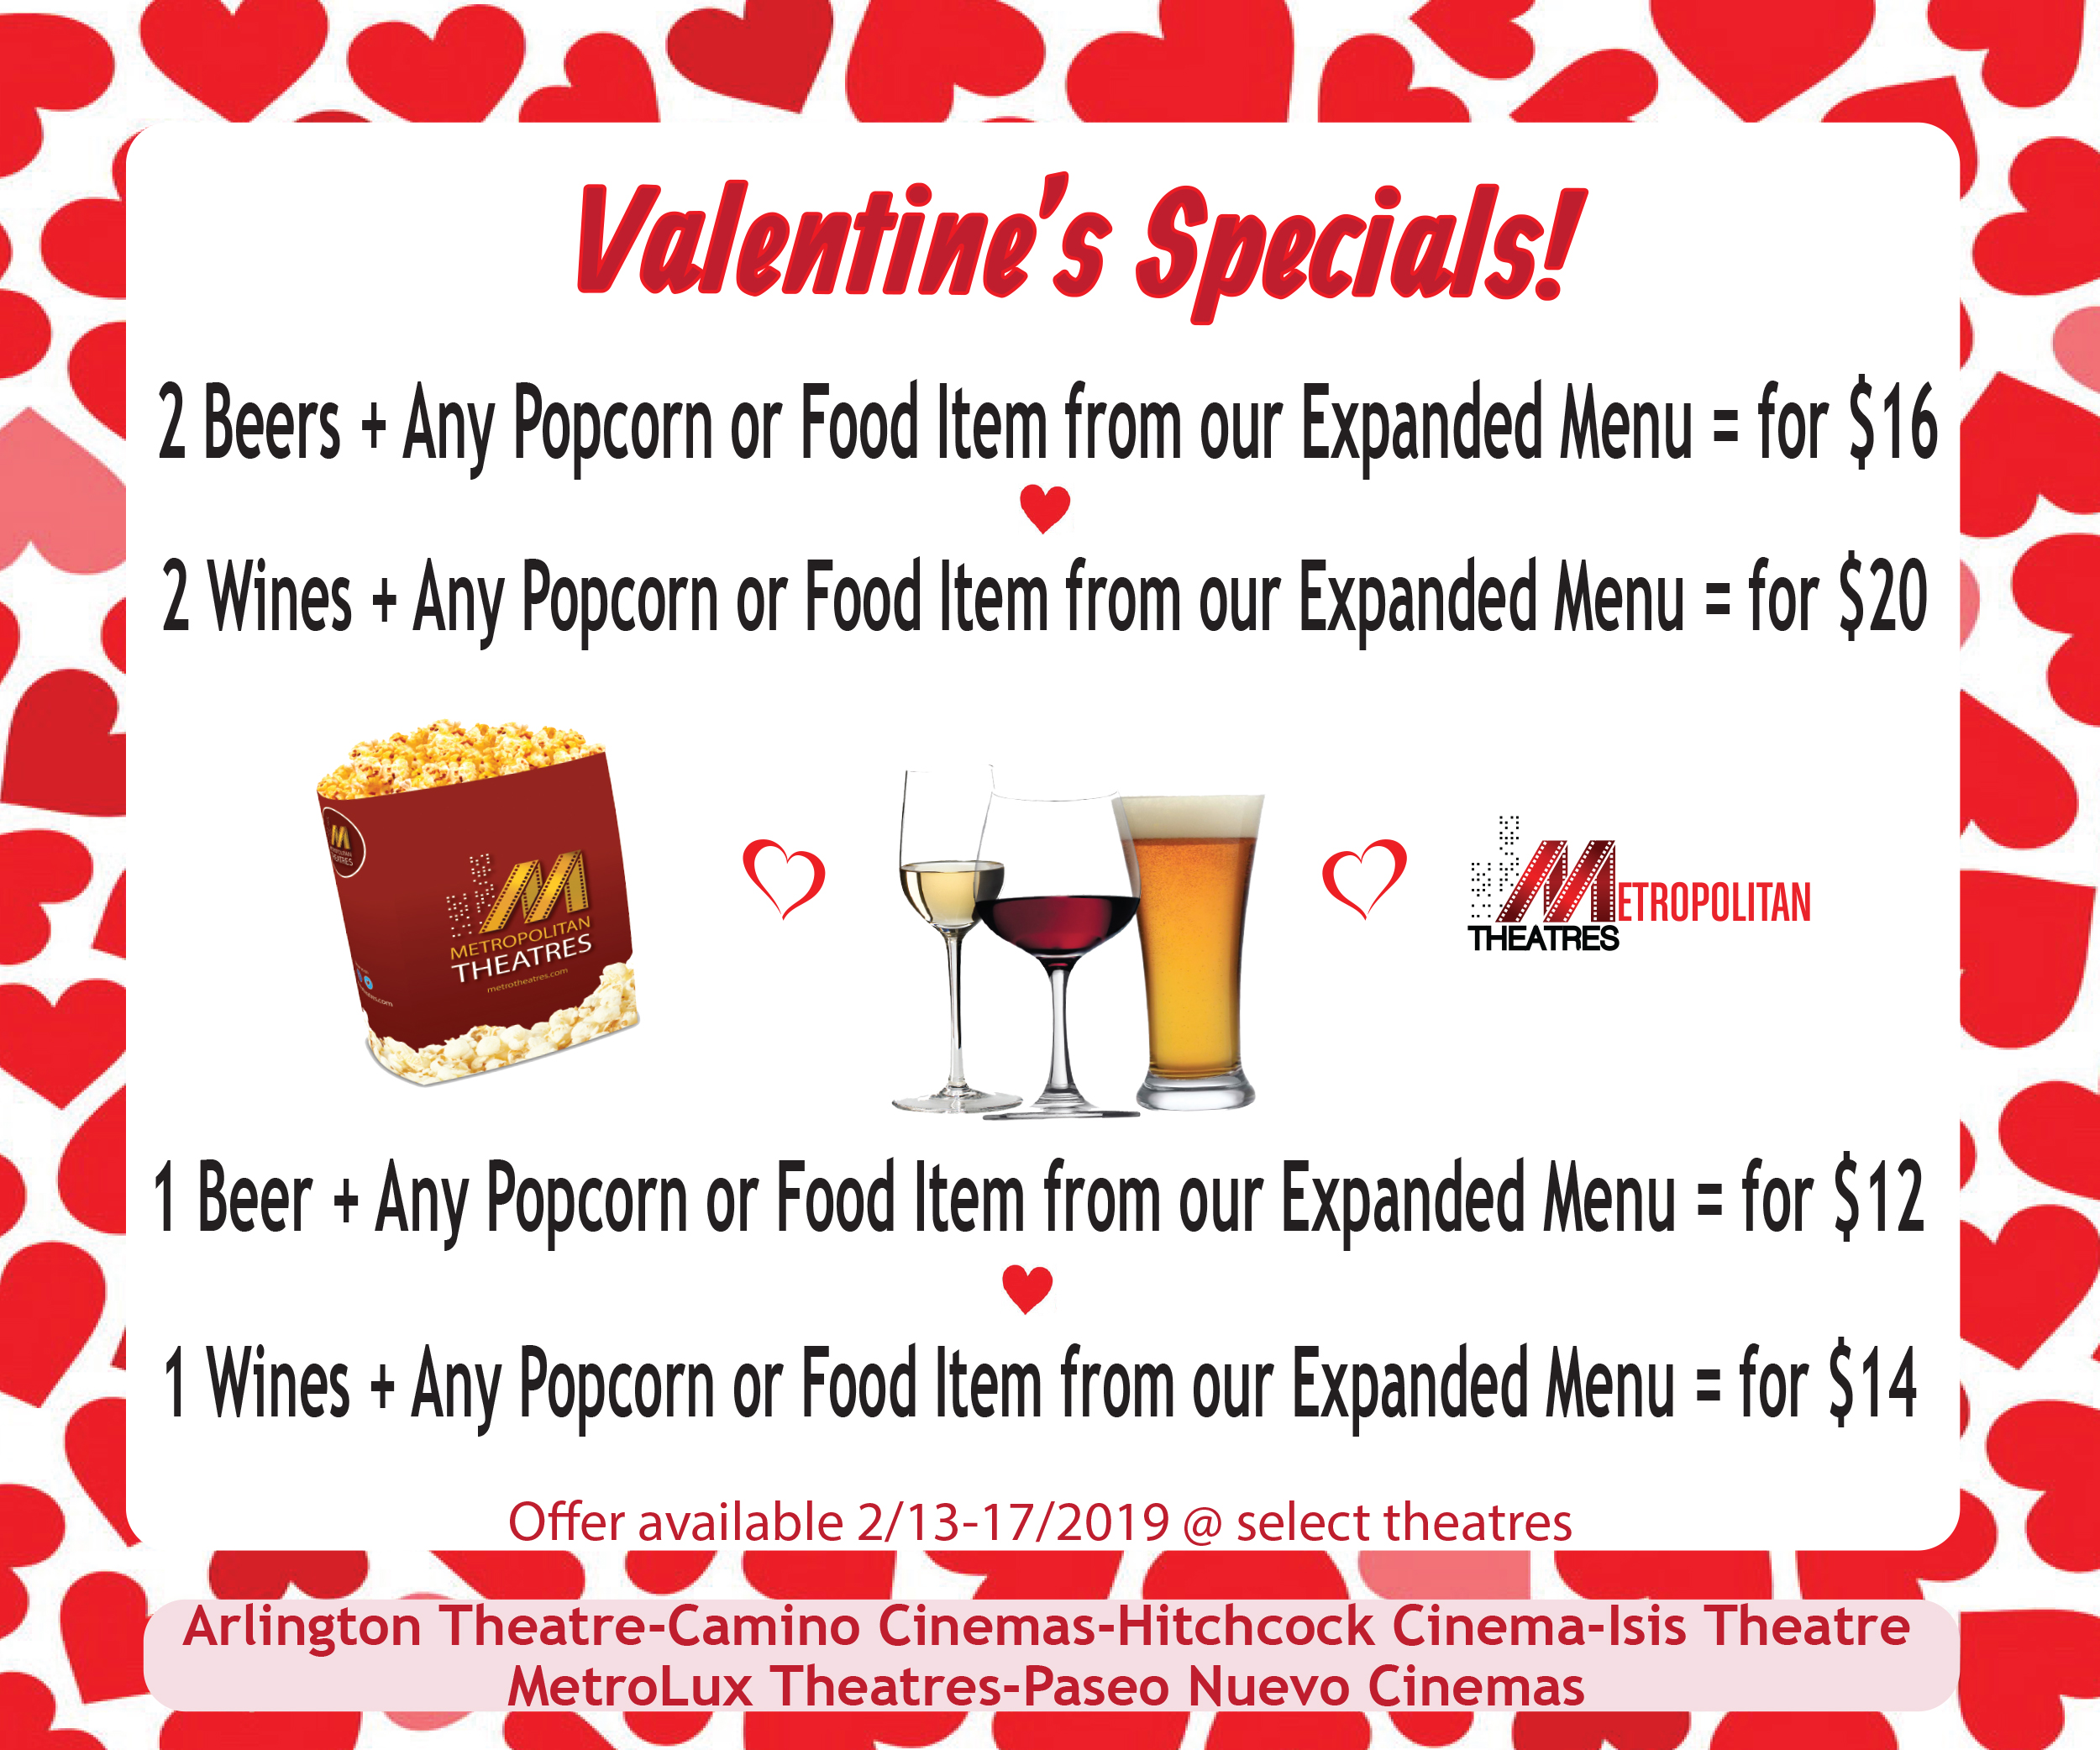 Valentine's Concessions Specials